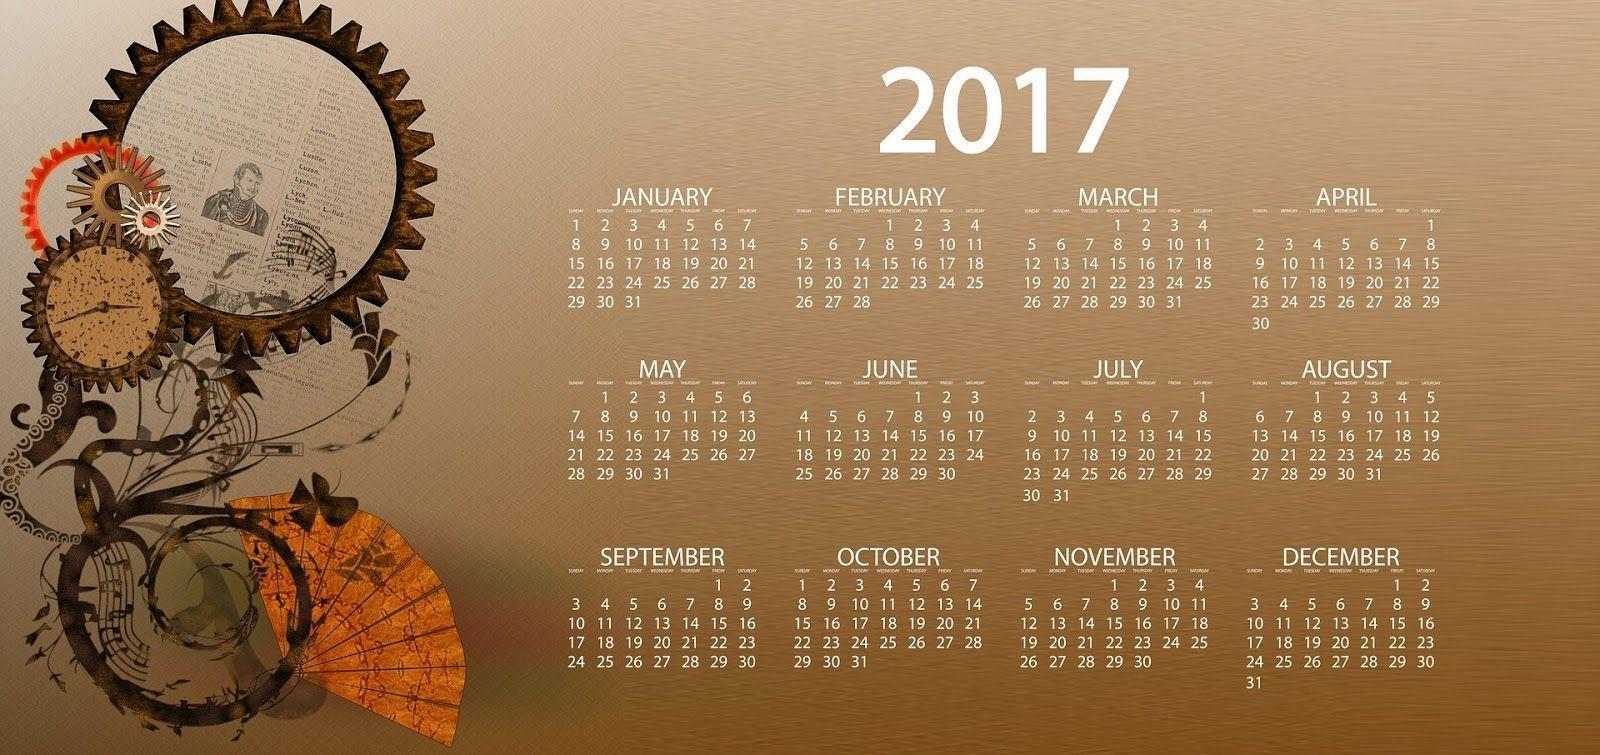 Wallpapers With Calendar 2017 1600x755